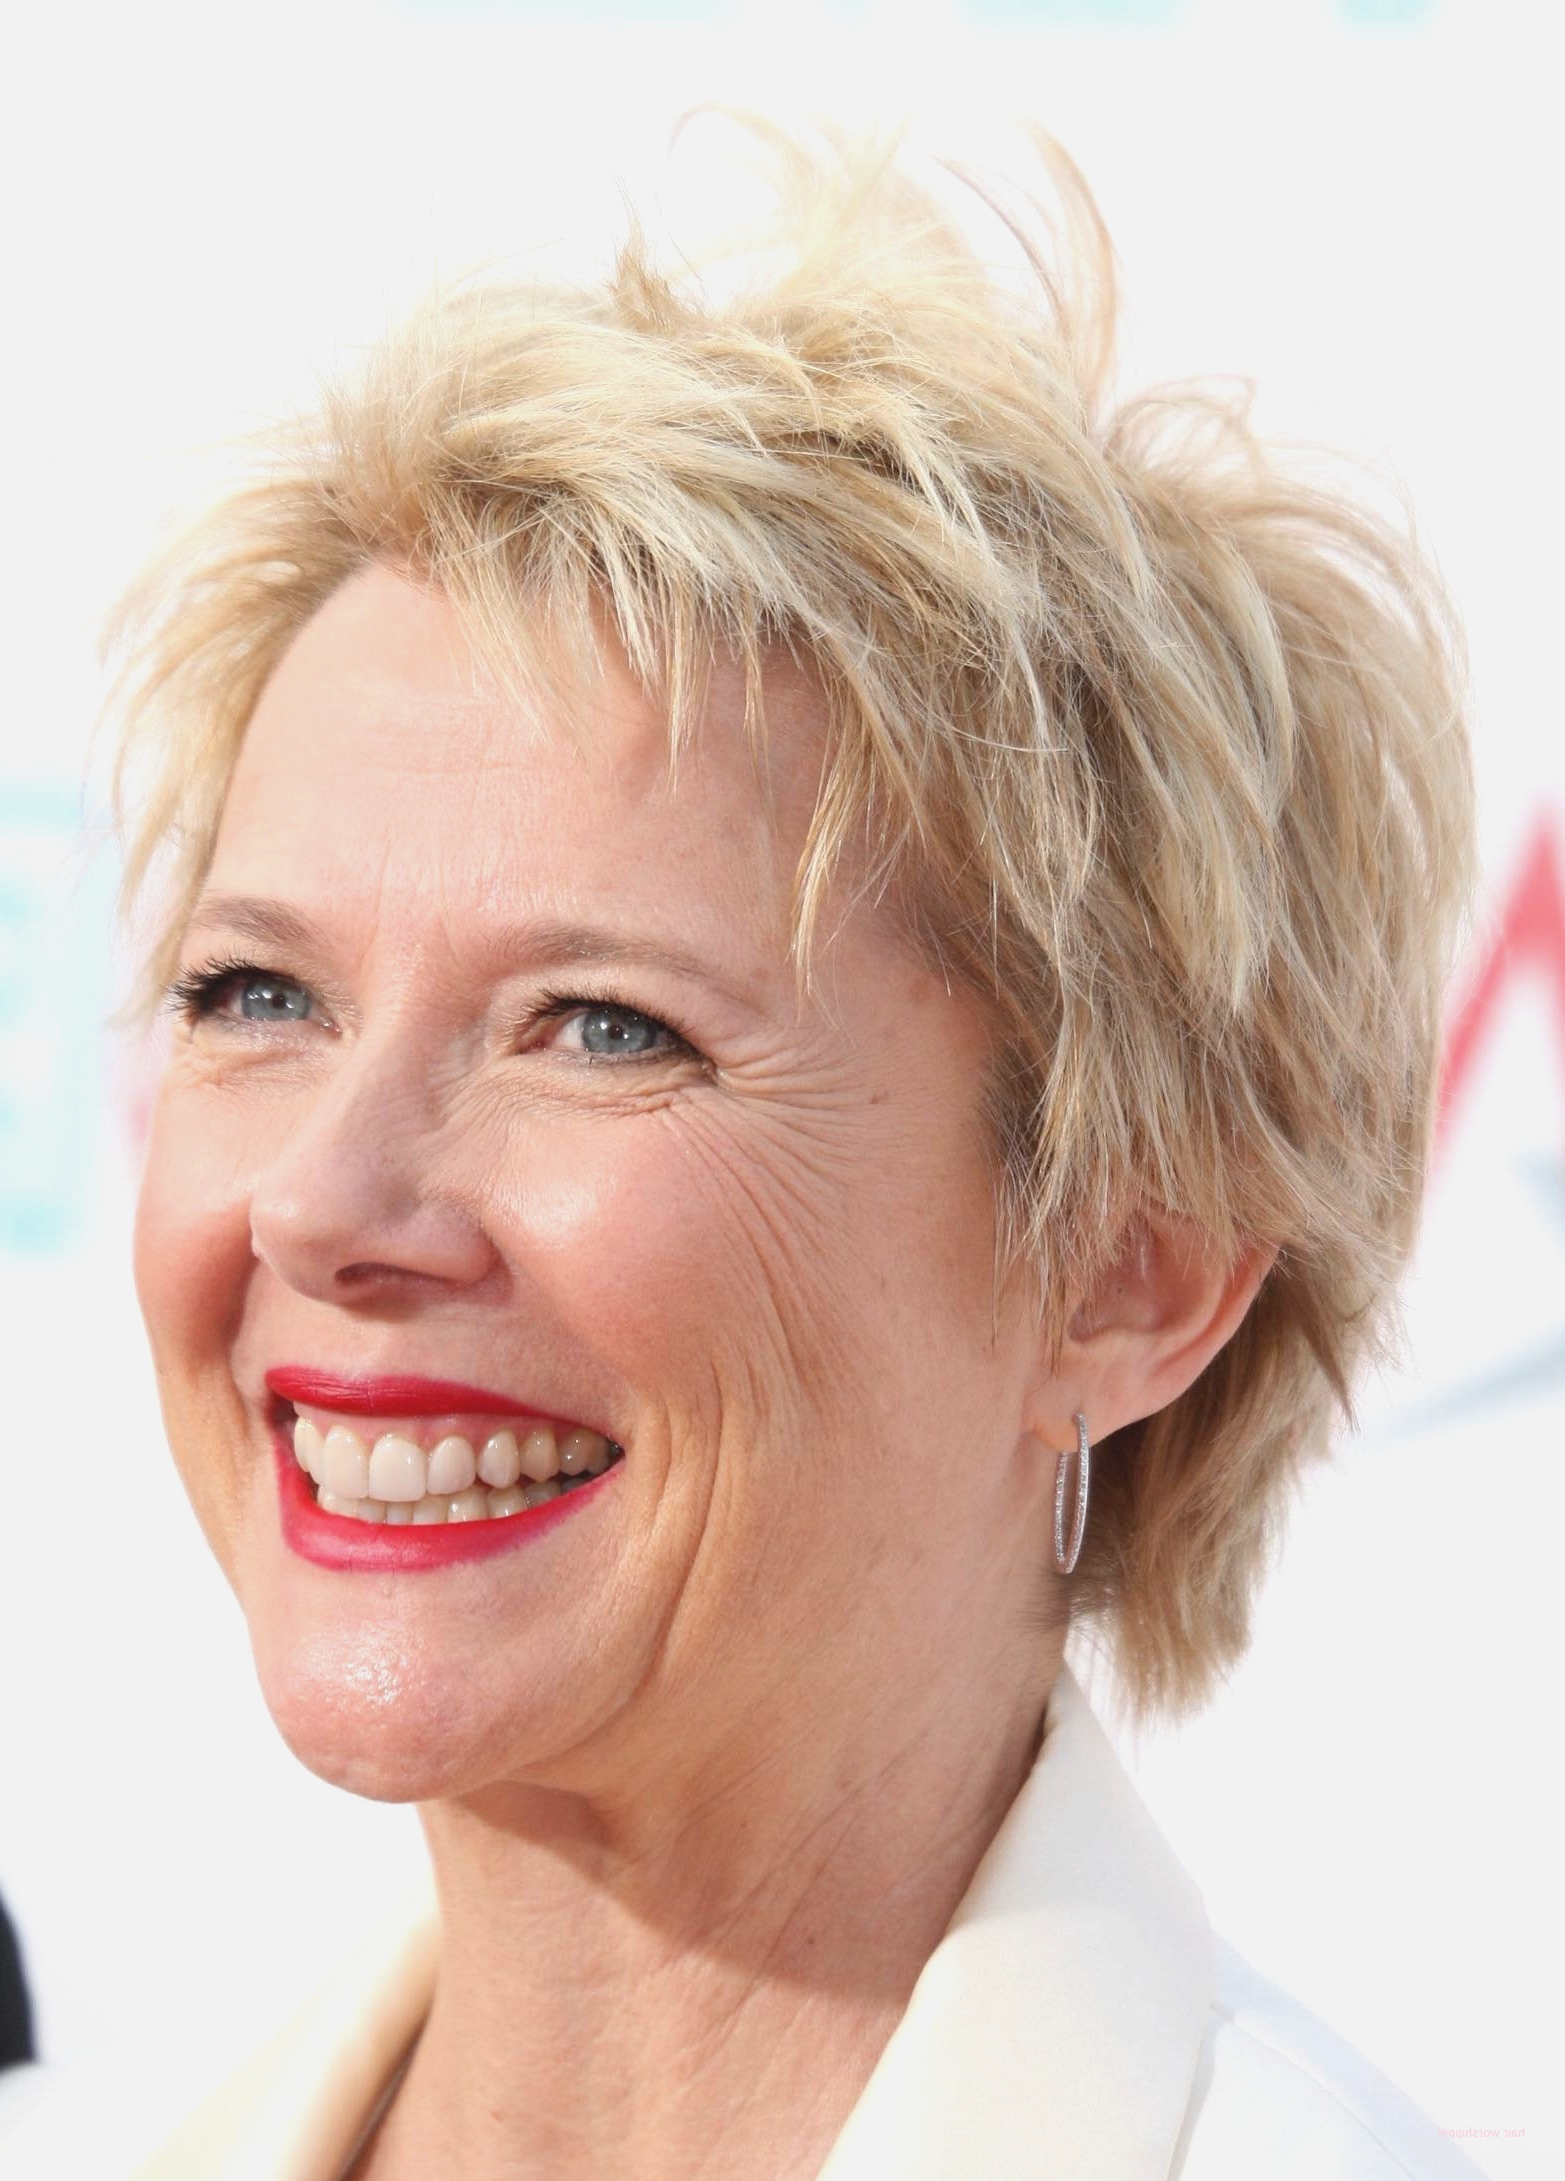 Women's Hairstyles For 60 Year Olds Elegant Stylish Short Hairstyles Within Short Hairstyles For 60 Year Old Woman (View 22 of 25)